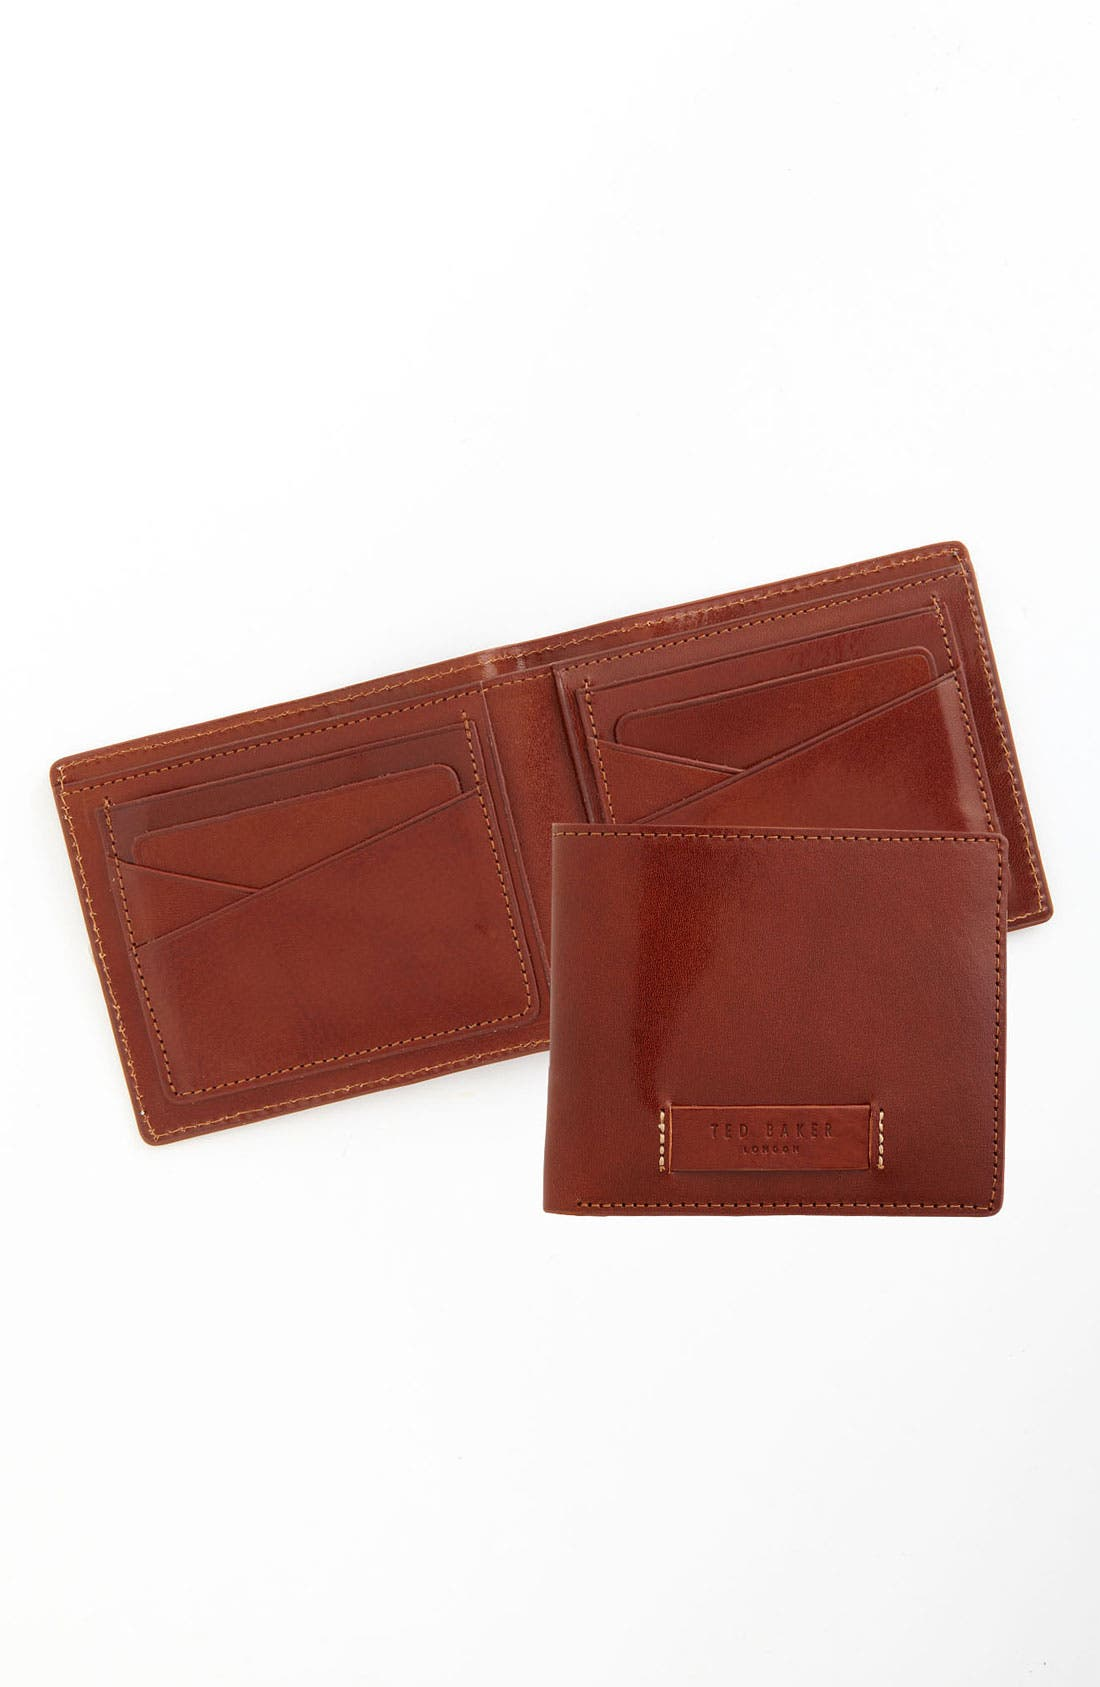 Main Image - Ted Baker London 'Raw Edge' Wallet